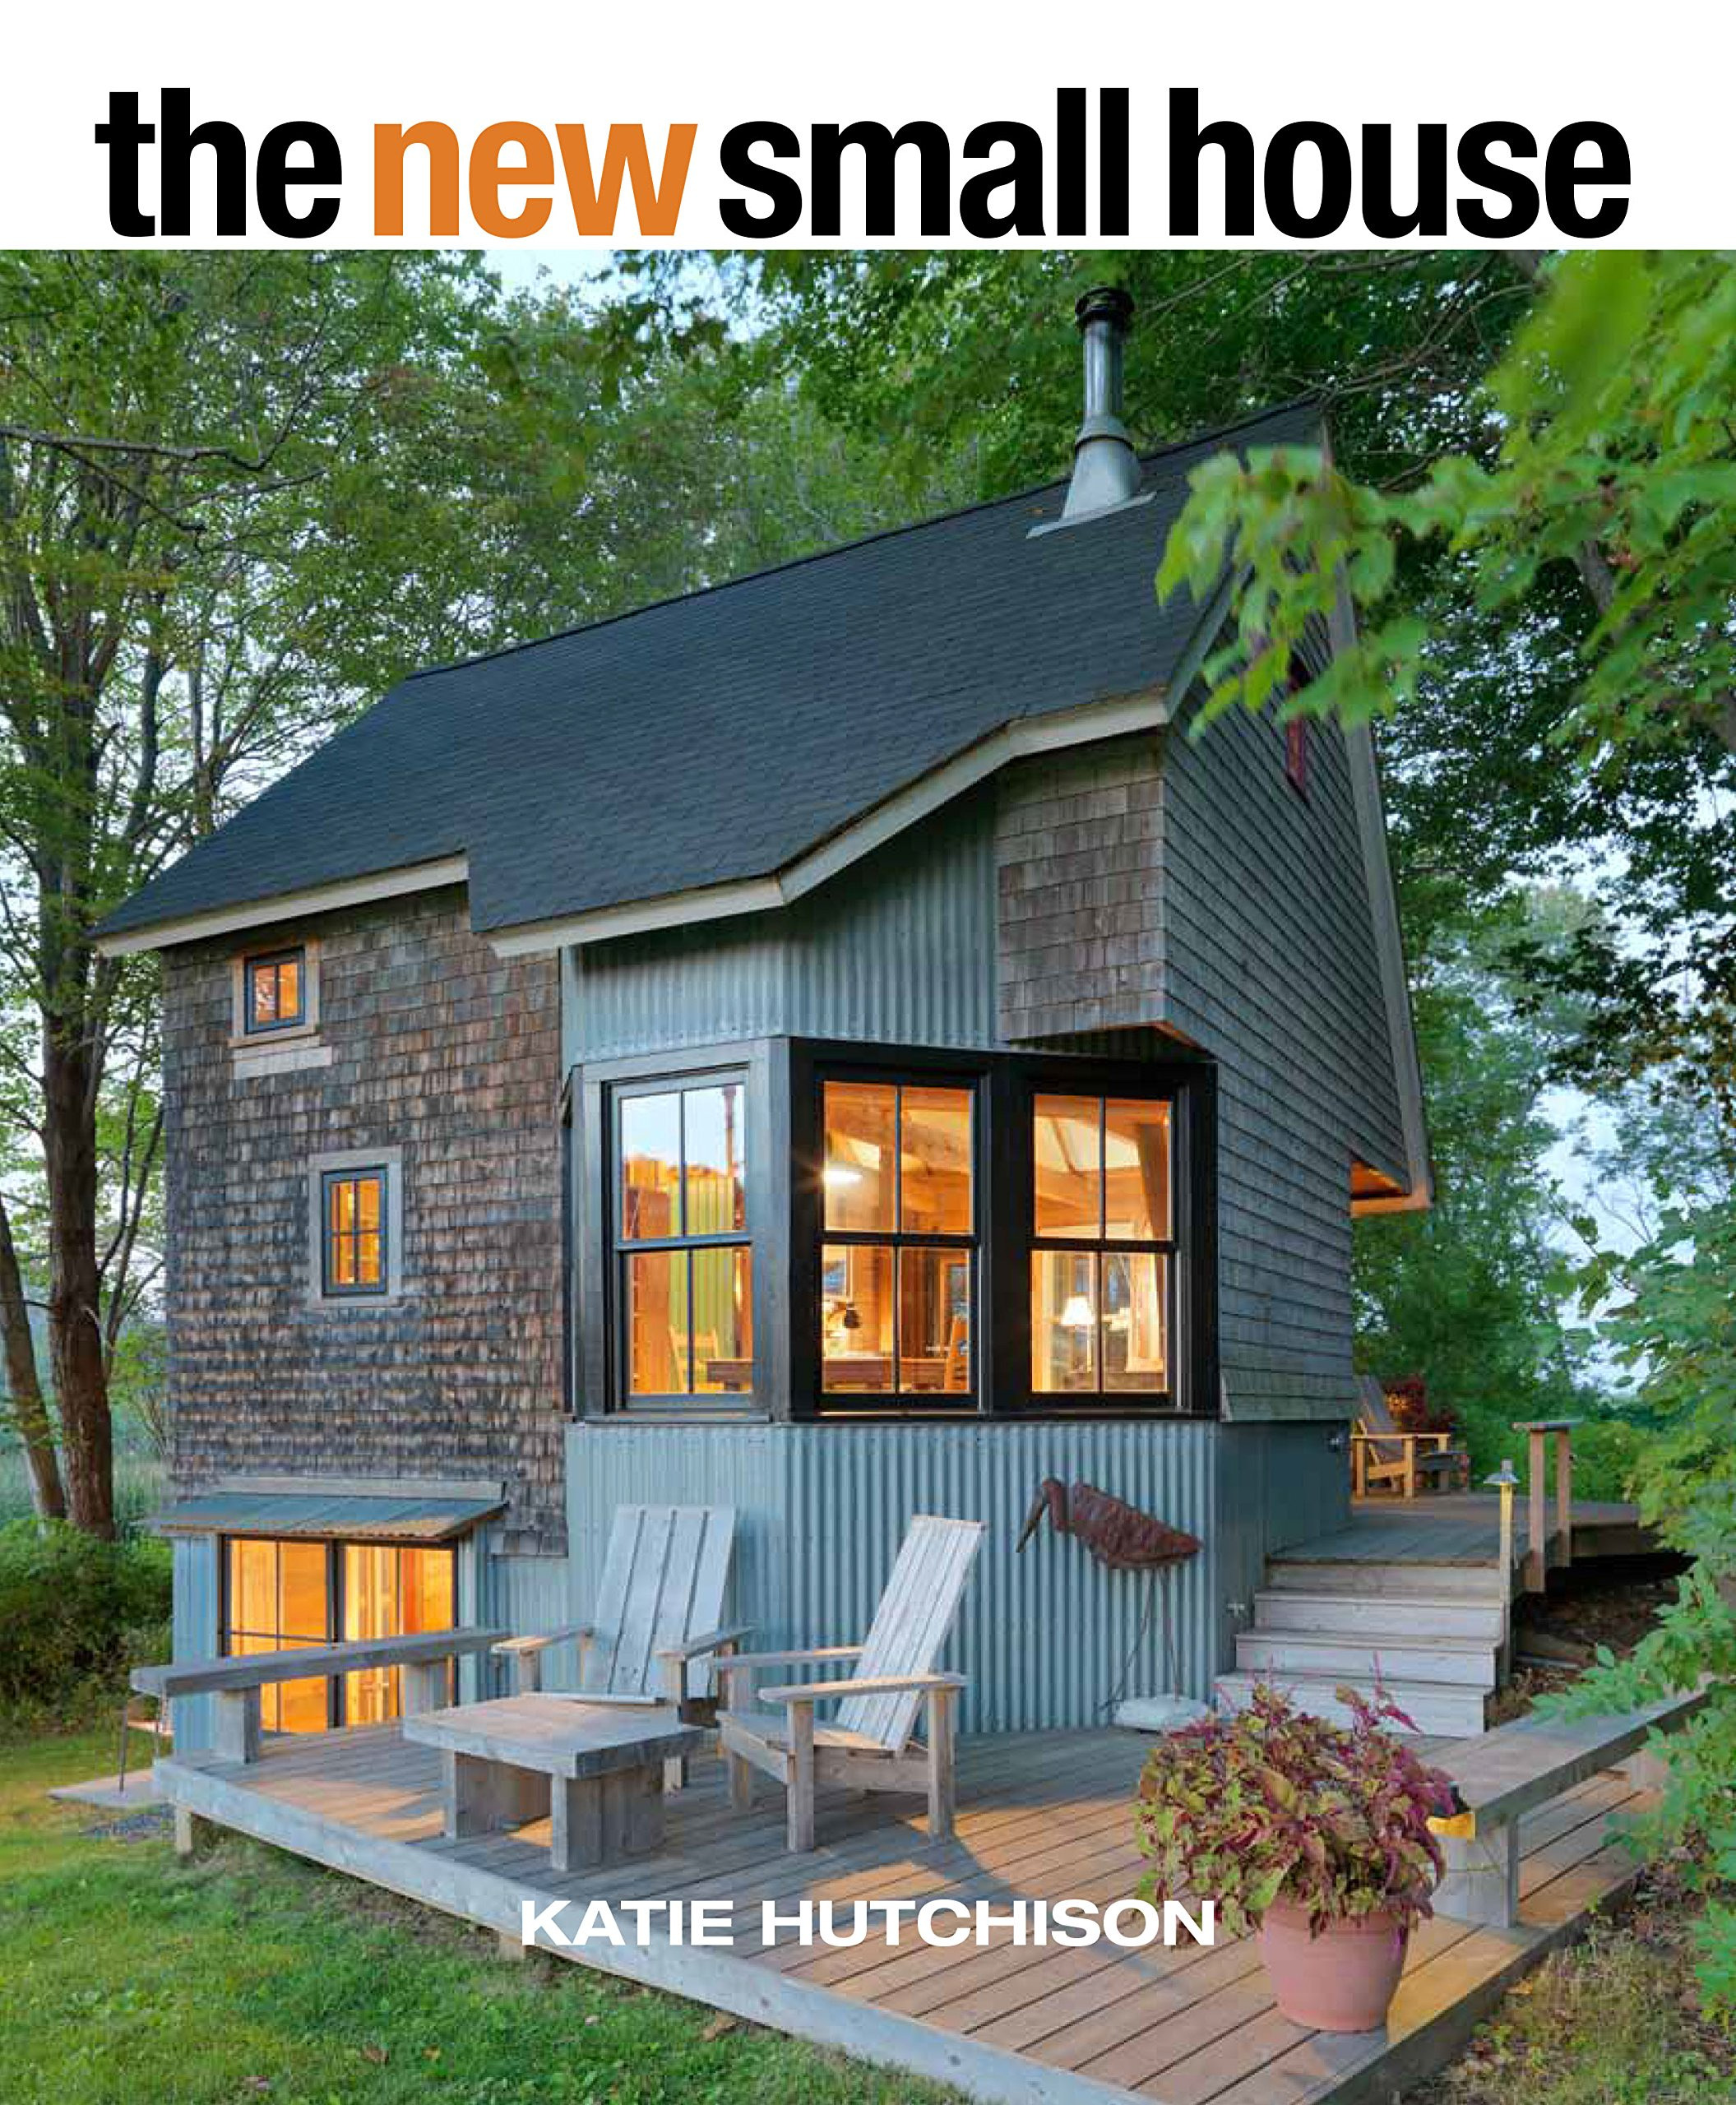 New Small Home Designs Awesome the New Small House Amazon Katie Hutchison